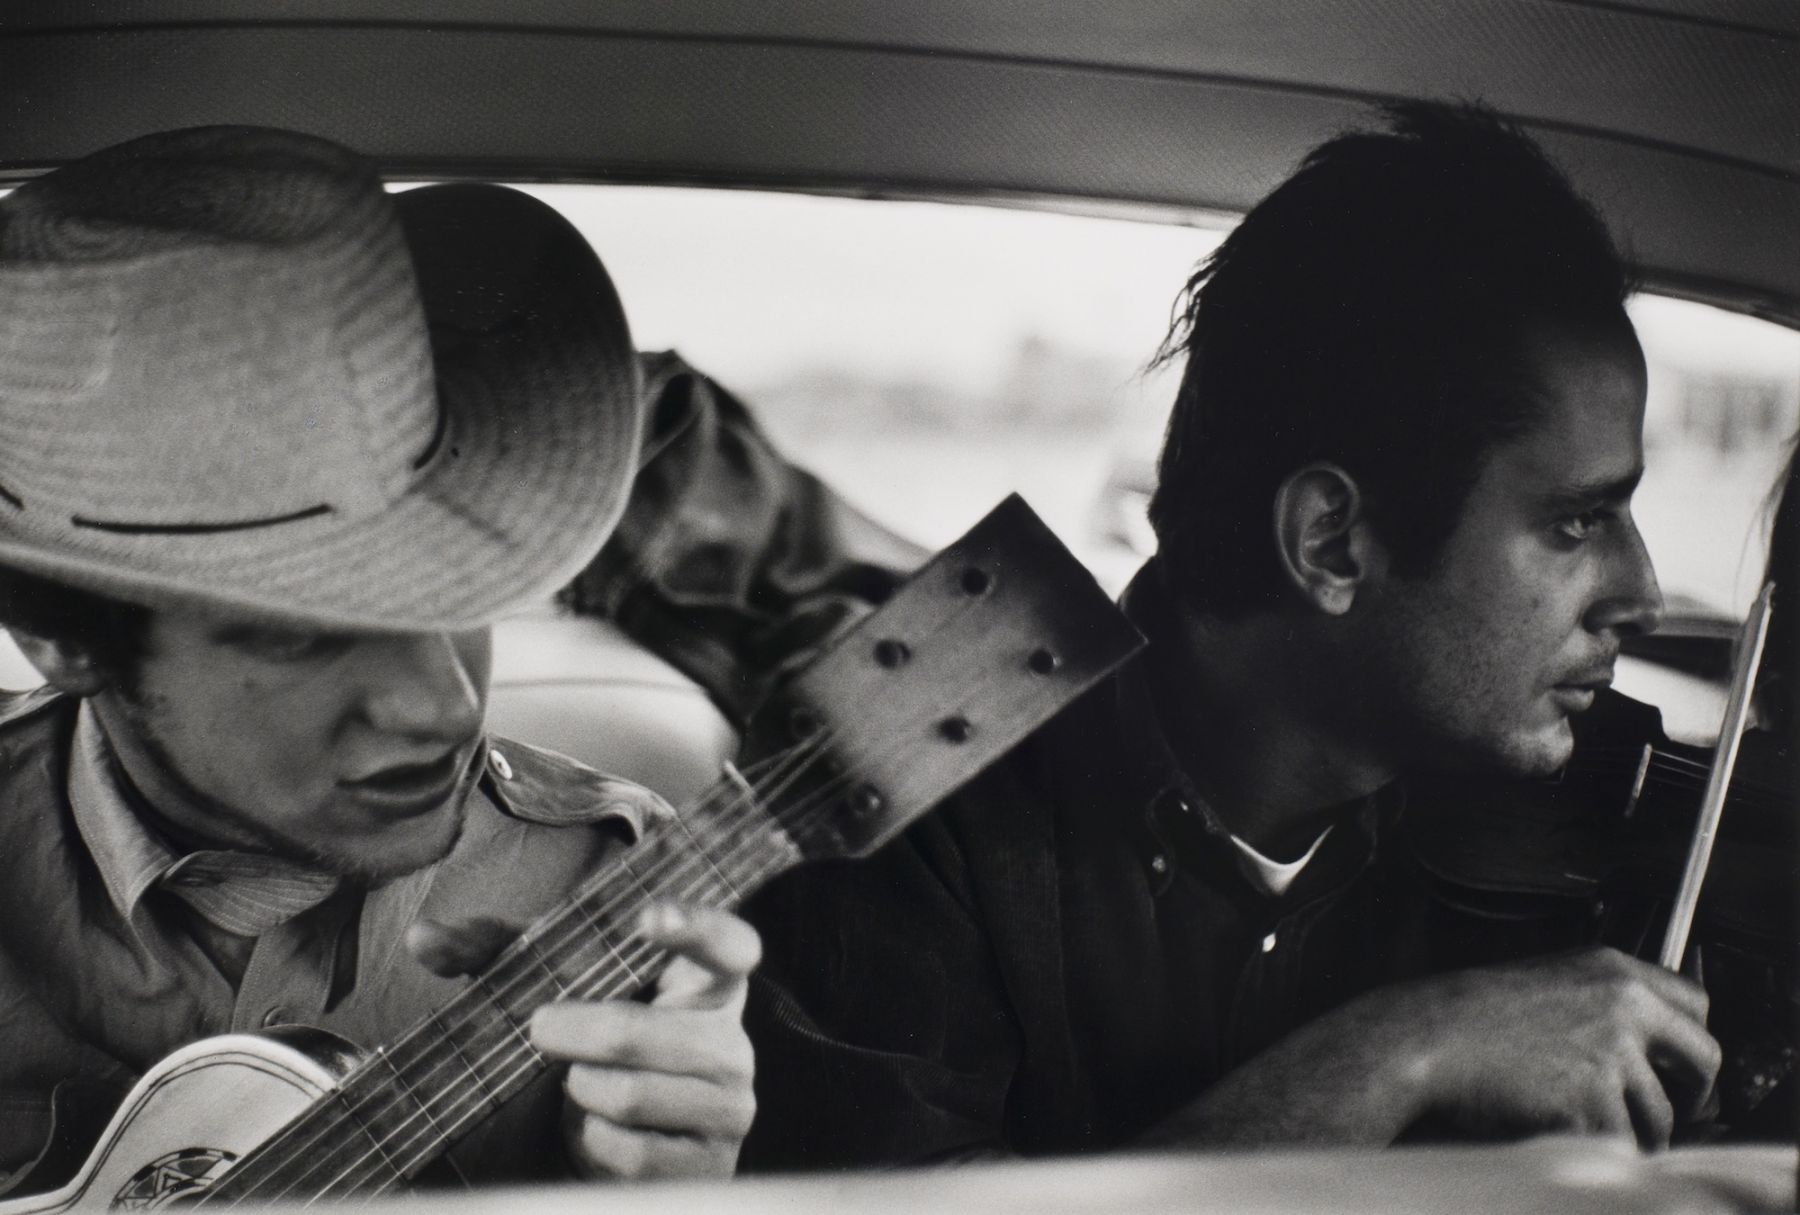 """Bernard Plossu (1945-)  Mexico """"On the Road"""", 1966  Gelatin silver print  10 x 14 inches (paper), black and white photography"""